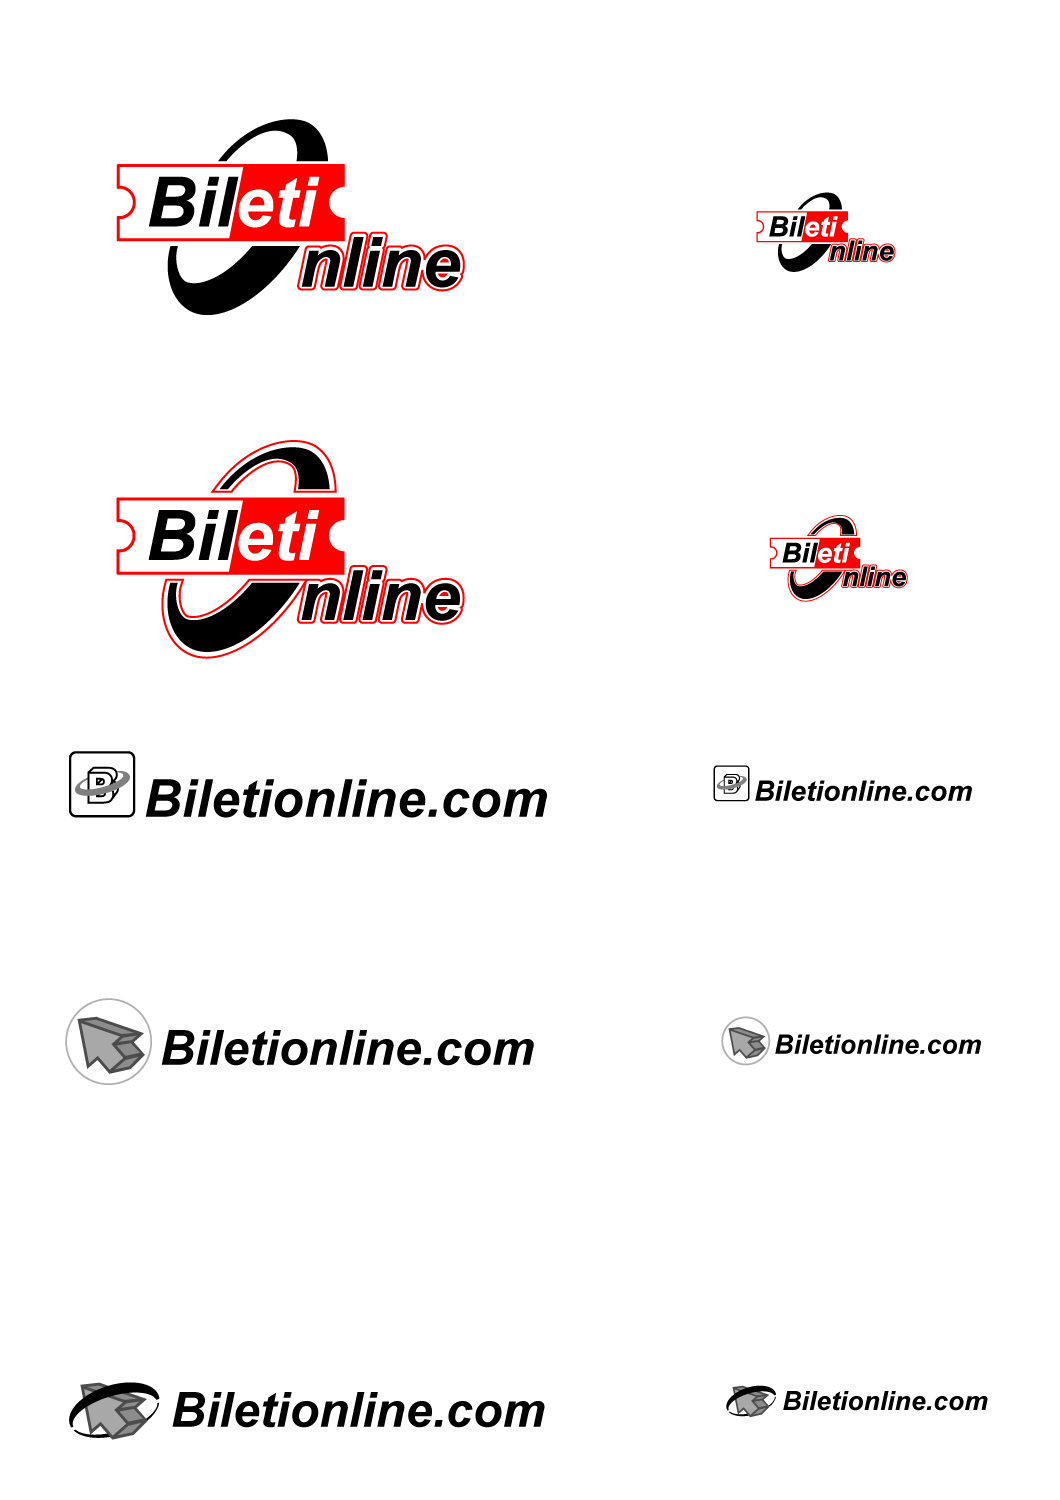 biletionline.com